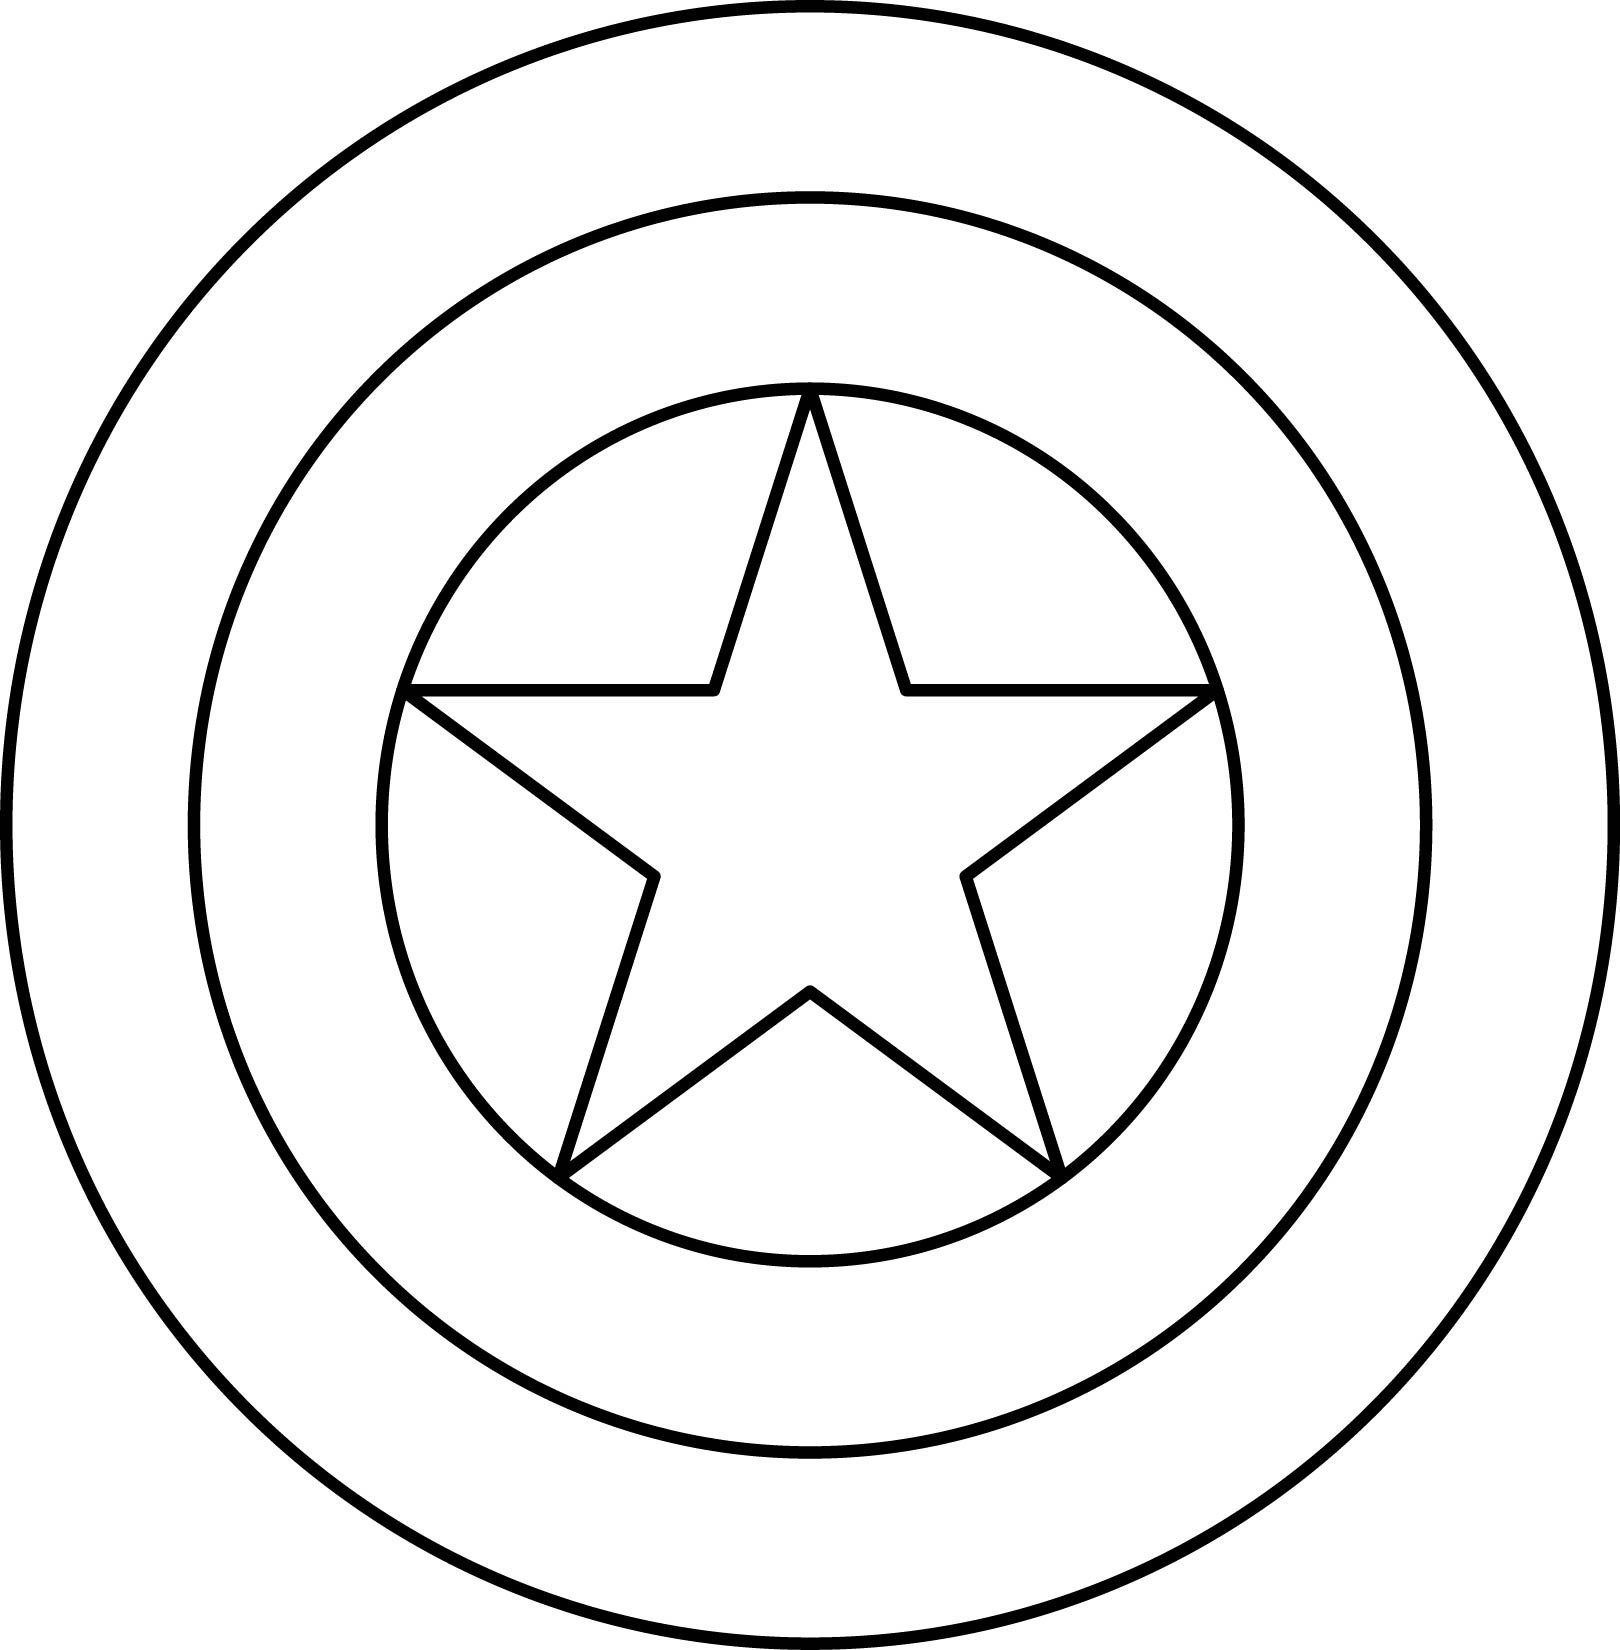 Superhero Logos Coloring Pages Avengers Coloring Pages Captain America Coloring Pages Avengers Coloring